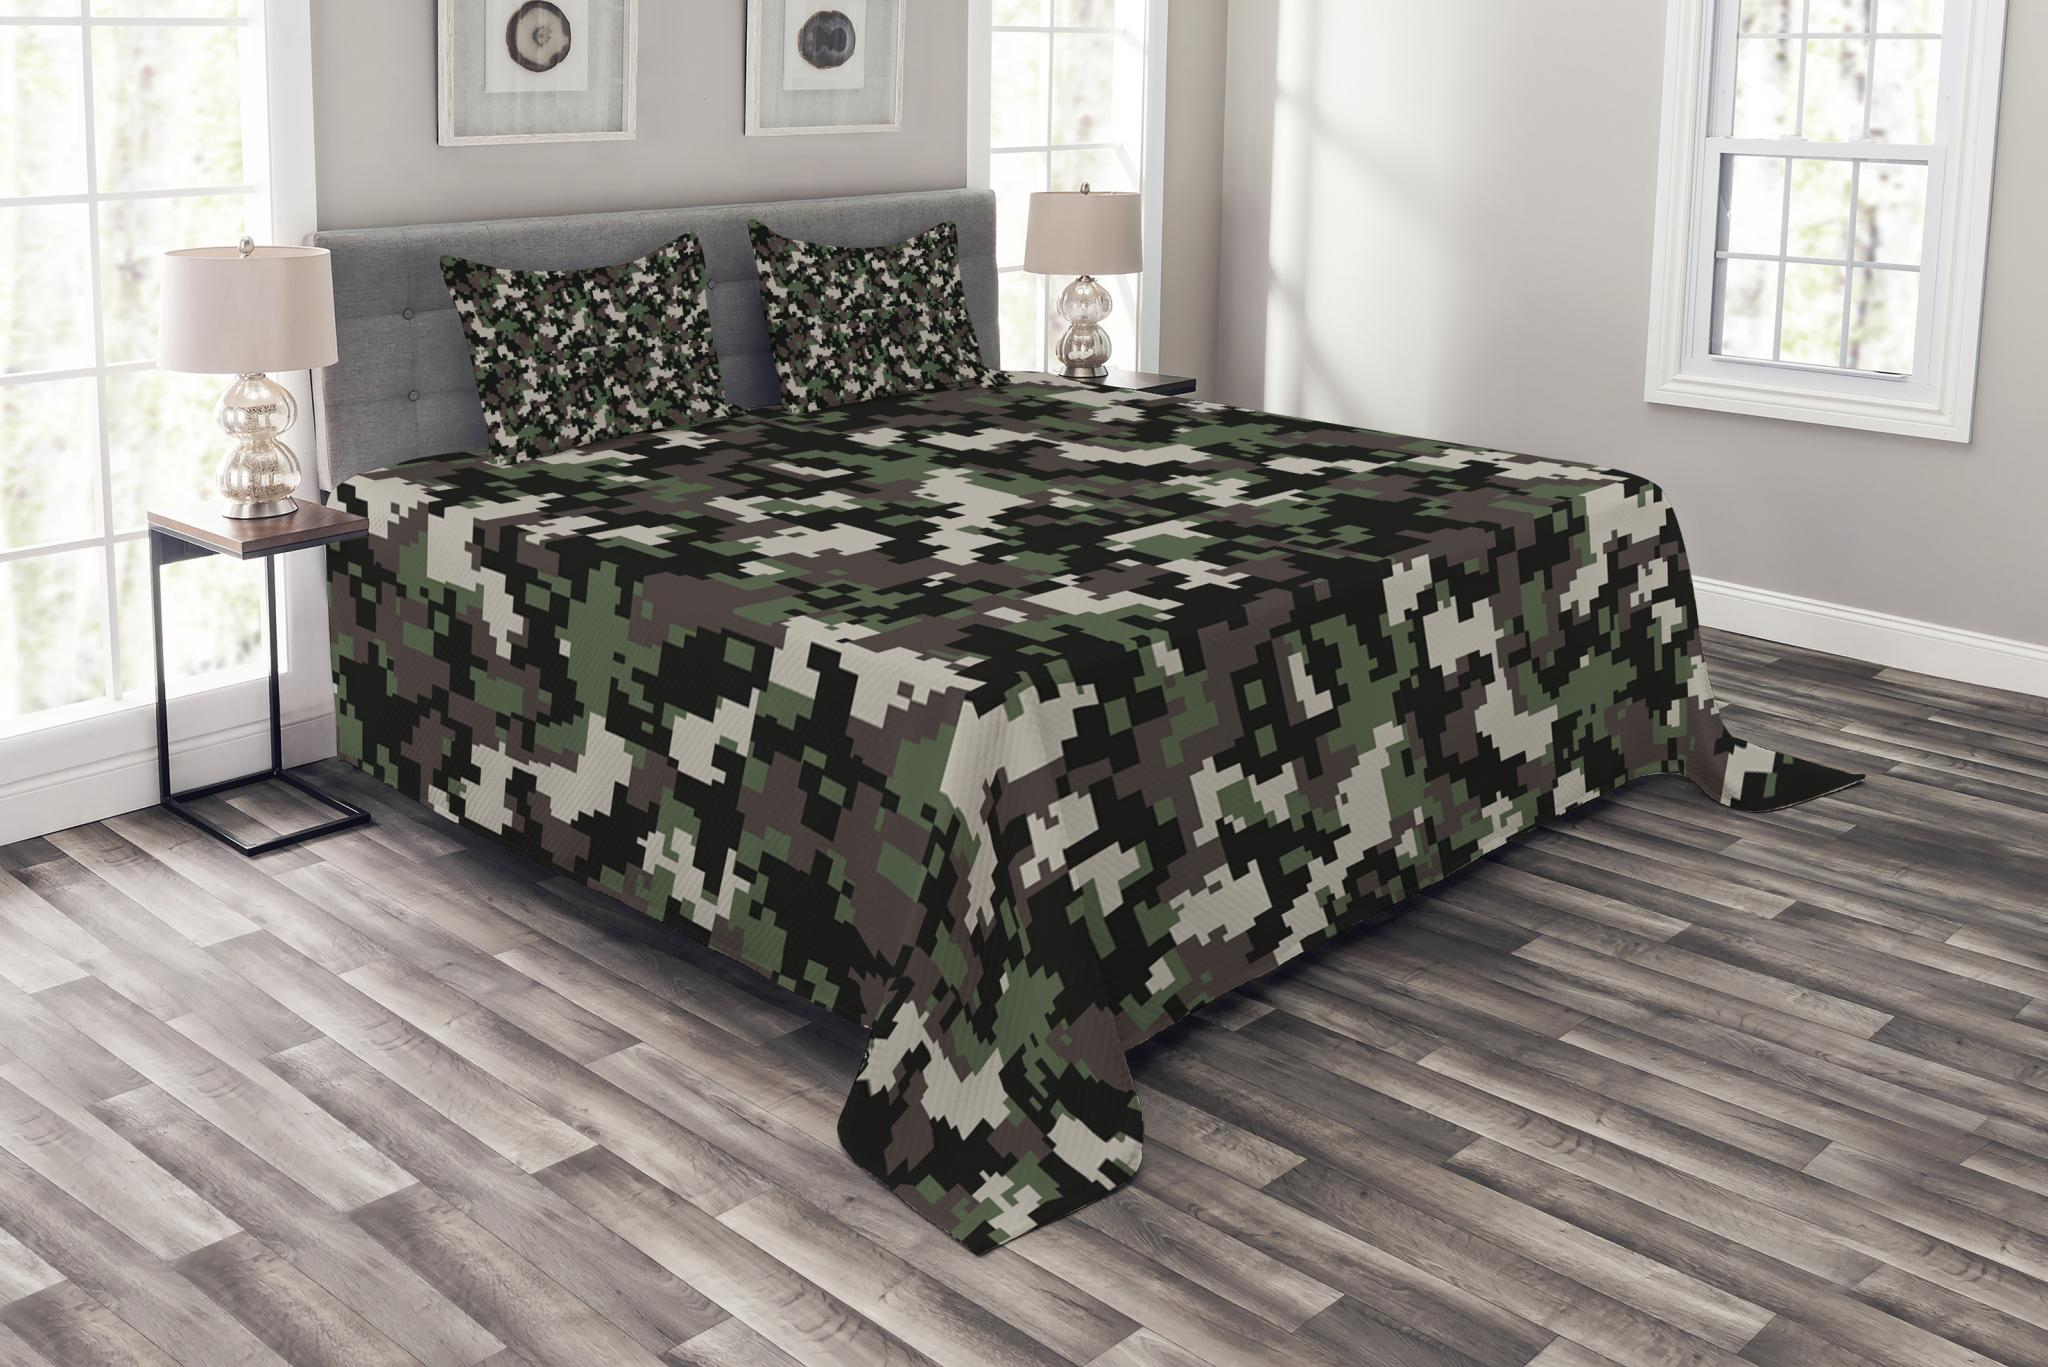 Grey, Twin NTBED Camouflage Bedspread Quilt Sets Reversible Patchwork Coverlet 3 Piece Lightweight Bedding Set with 2 Pillow Shams for Boys Teens